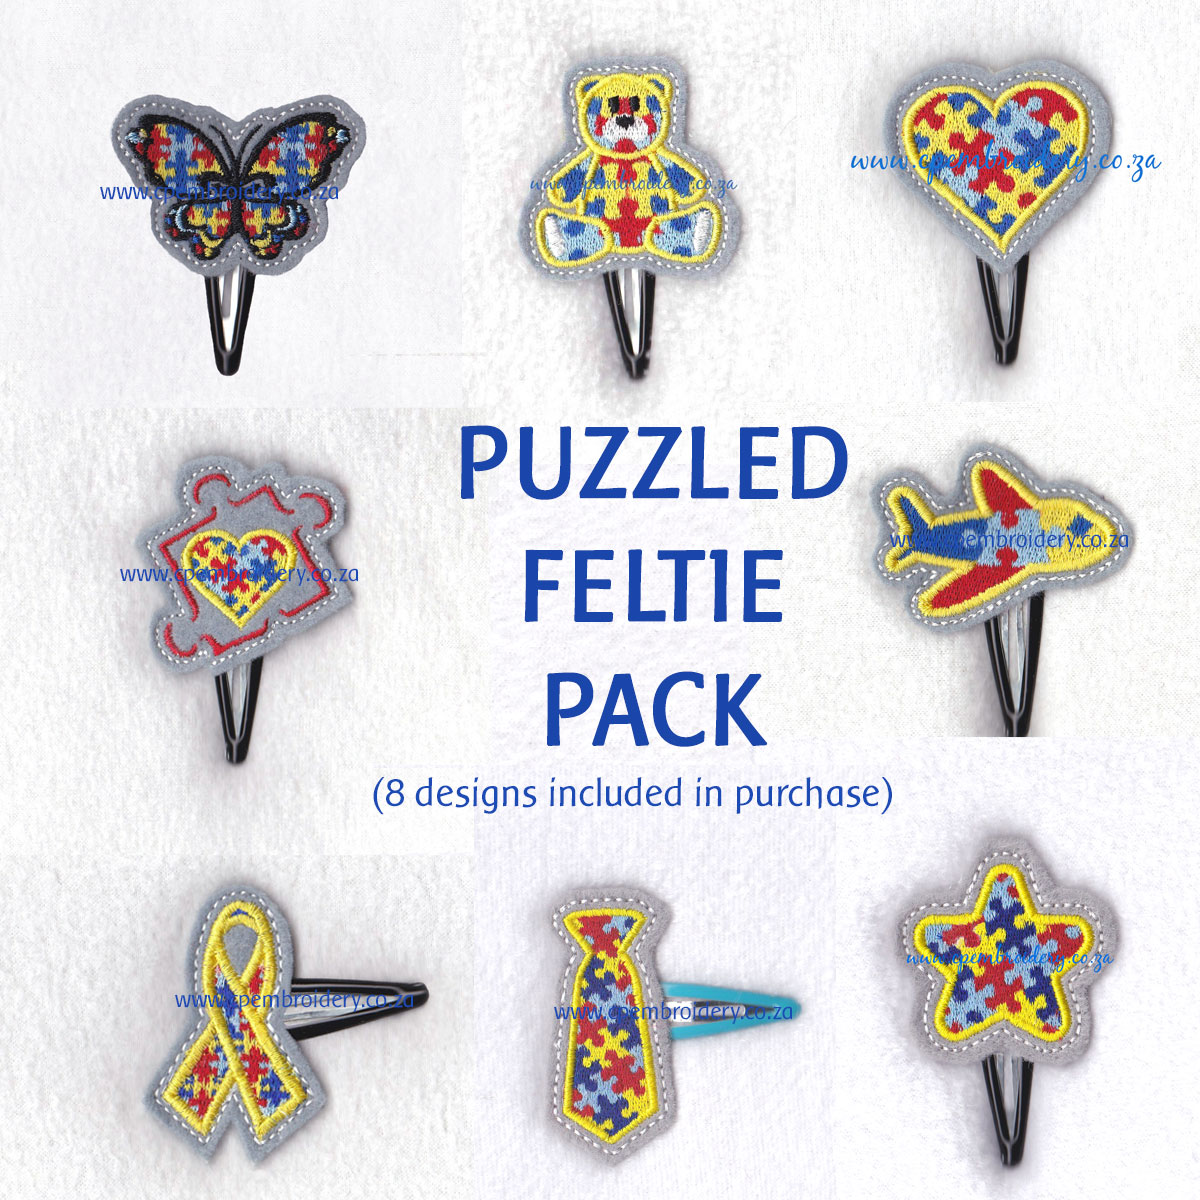 various interlocking colored colorful puzzle detail pieces puzzled support embroidery design support autism awareness pack feltie set